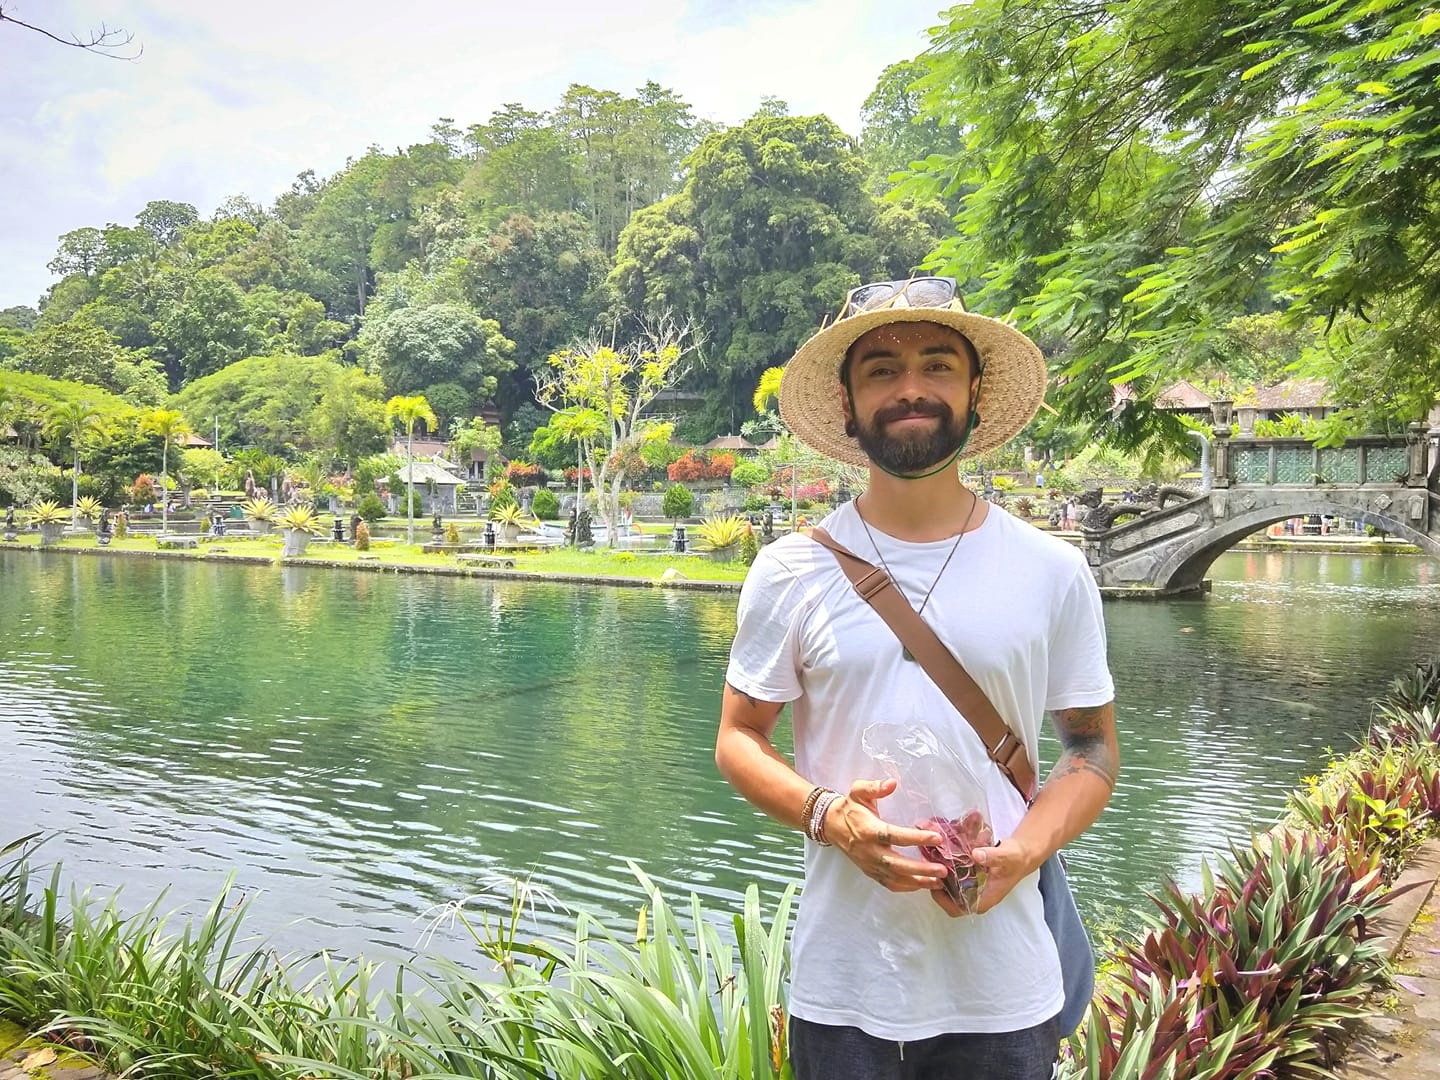 Yours truly, eating sweet potato crisps at the Water Palace in Indonesia, the day before coming down with symptoms of Dengue Fever… On our third day of being on holiday.